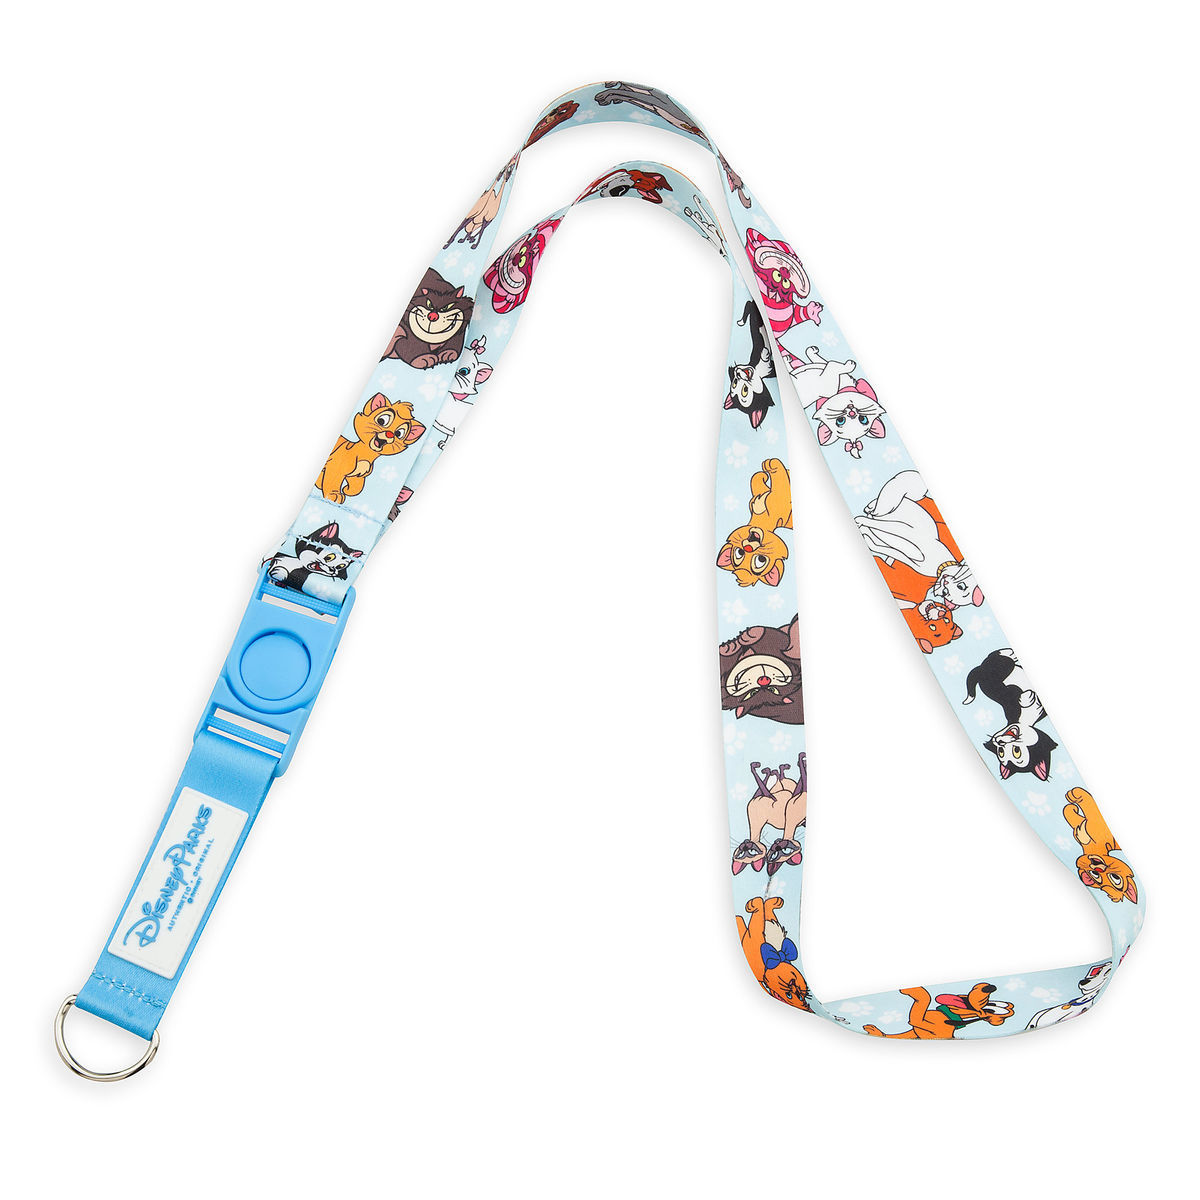 8026e0e092 Product Image of Disney Dog and Cats Reversible Lanyard   1